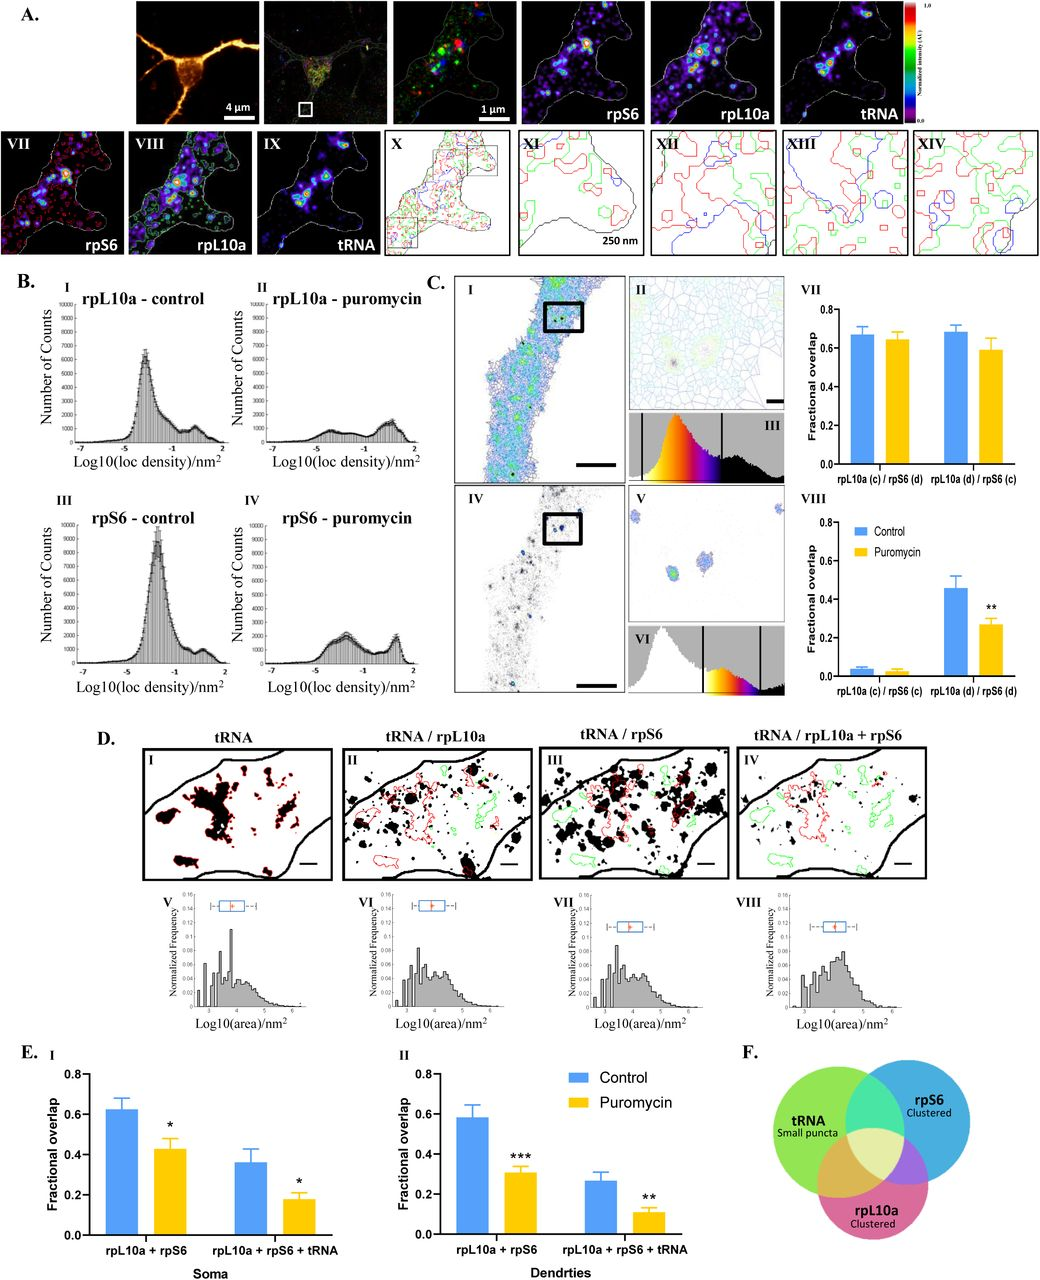 Measuring mRNA translation in neuronal processes and somata by tRNA